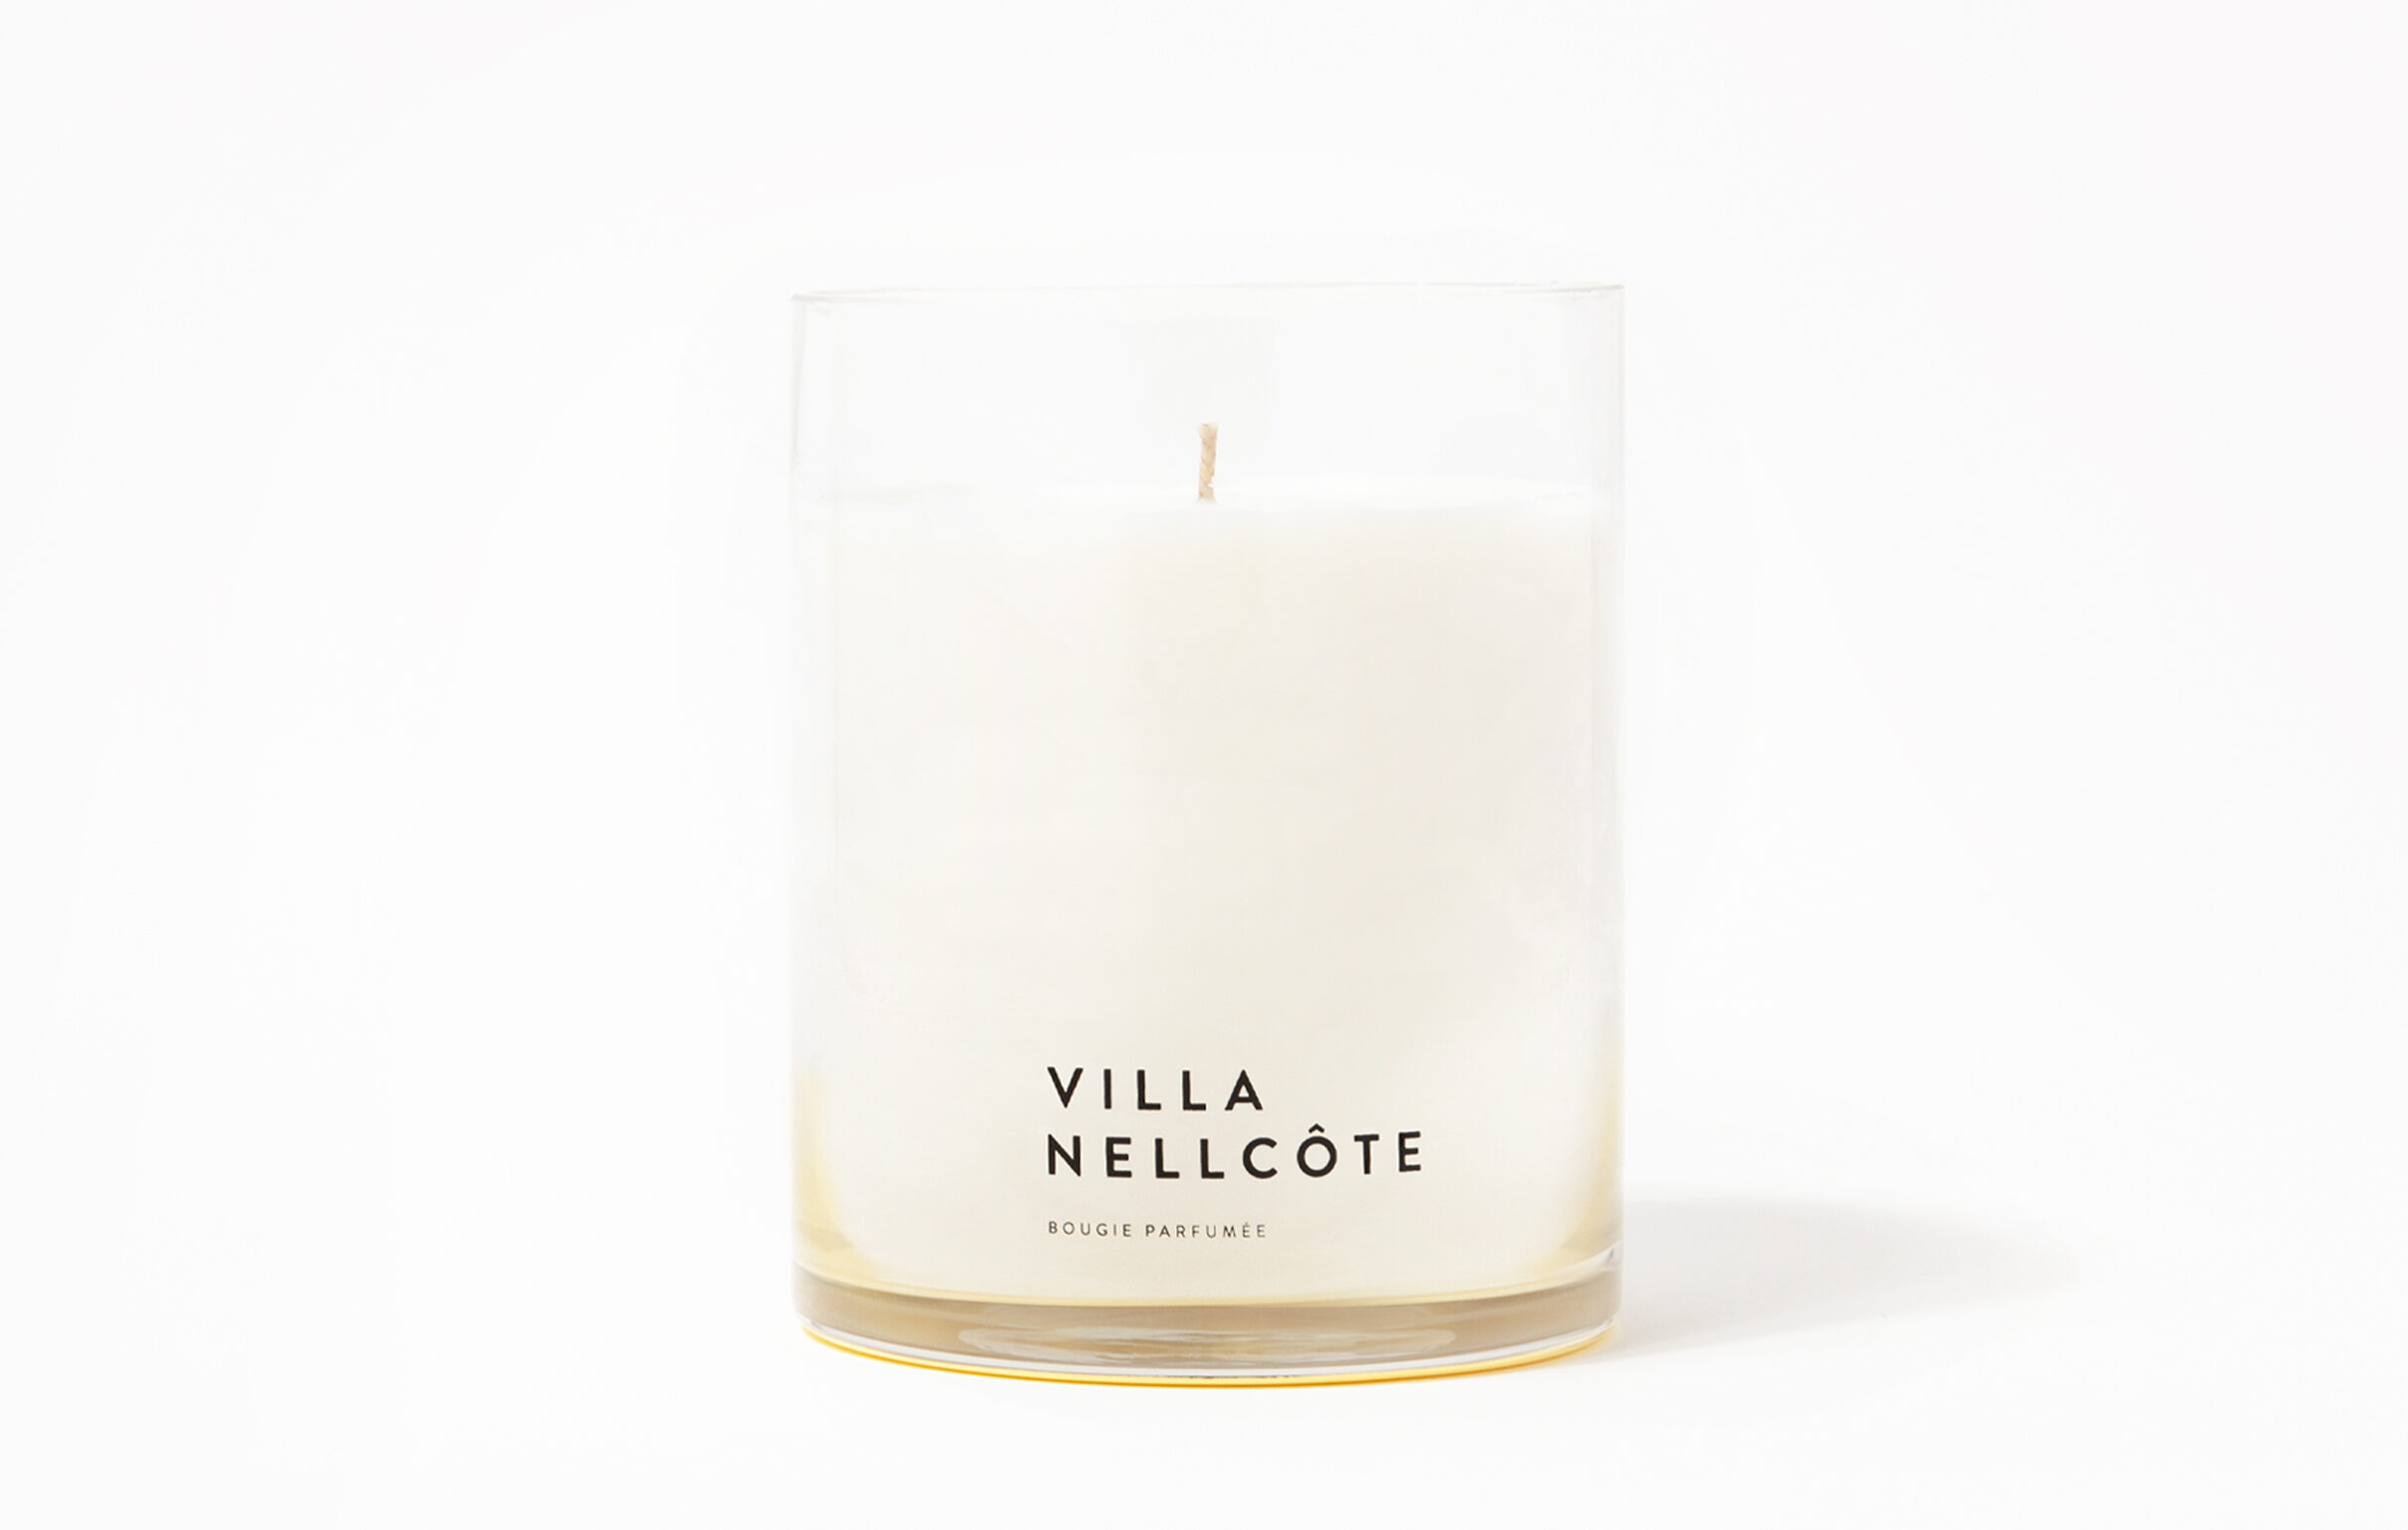 Villa Nellcôte scented candle is based on the estate with the same name, in Villefranche-sur-Mer, France. The fragrance is influenced by the garden and surroundings of the estate mostly associated with the production of one of the most iconic rock albums ever made.